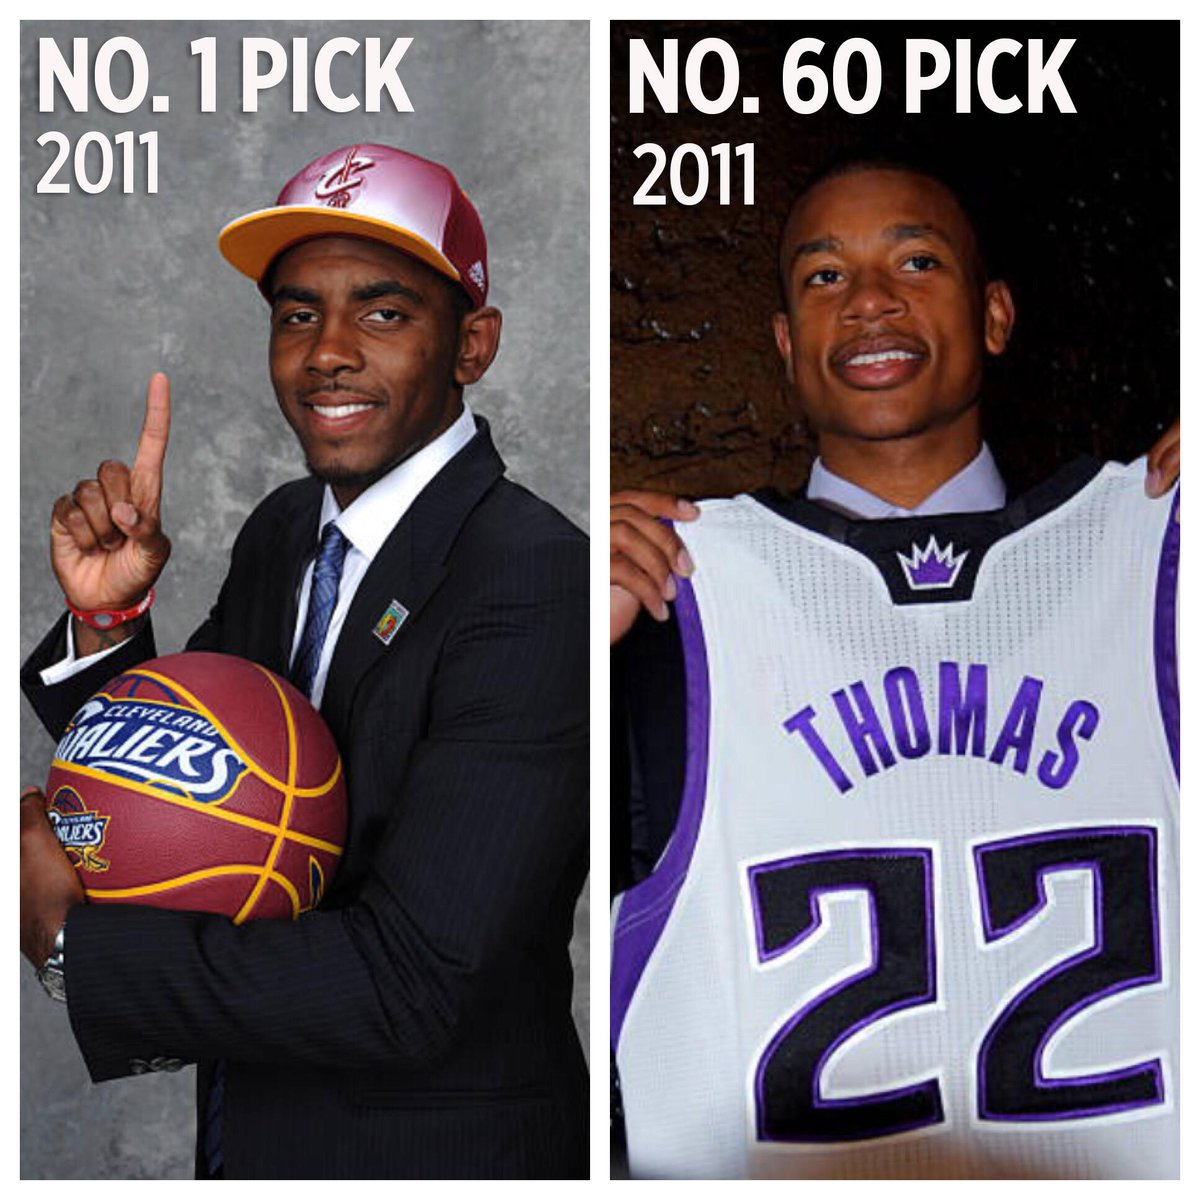 The 1st player of the 2011 draft was just traded for the last player in the SAME DRAFT.